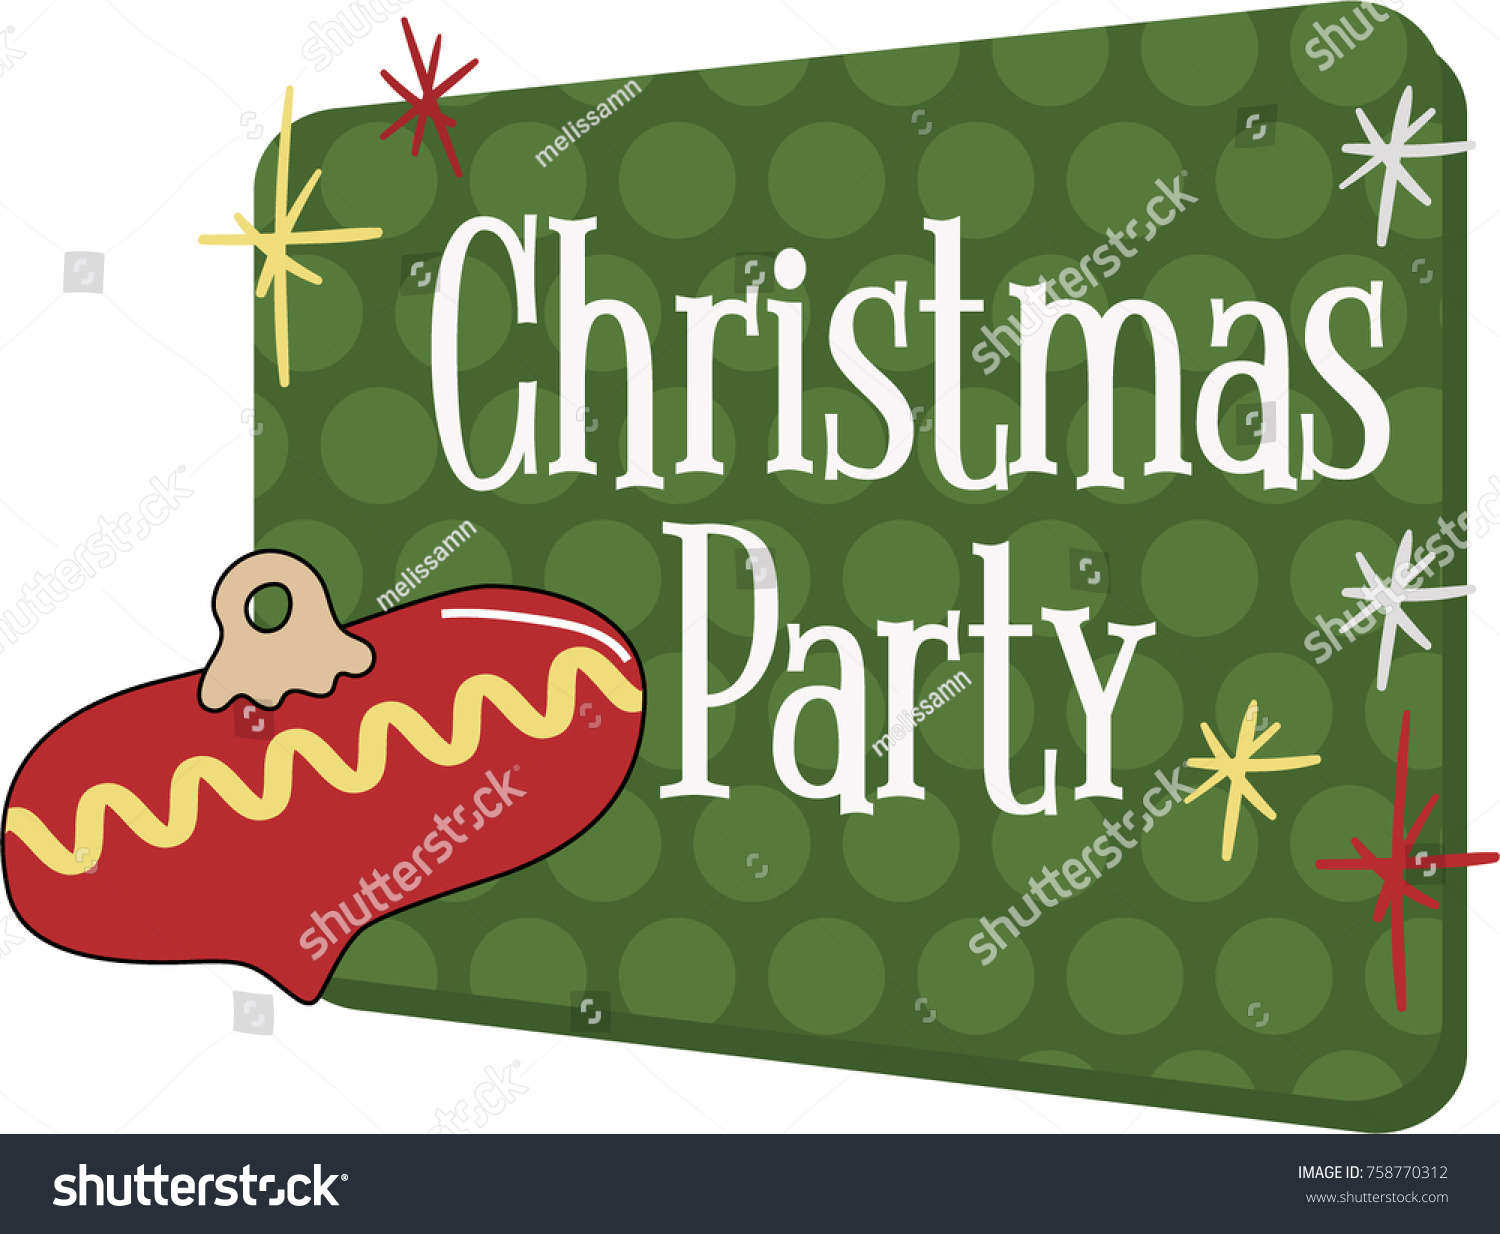 Christmas Party Invitation Vector Graphic Vintage Stock Vector HD ...